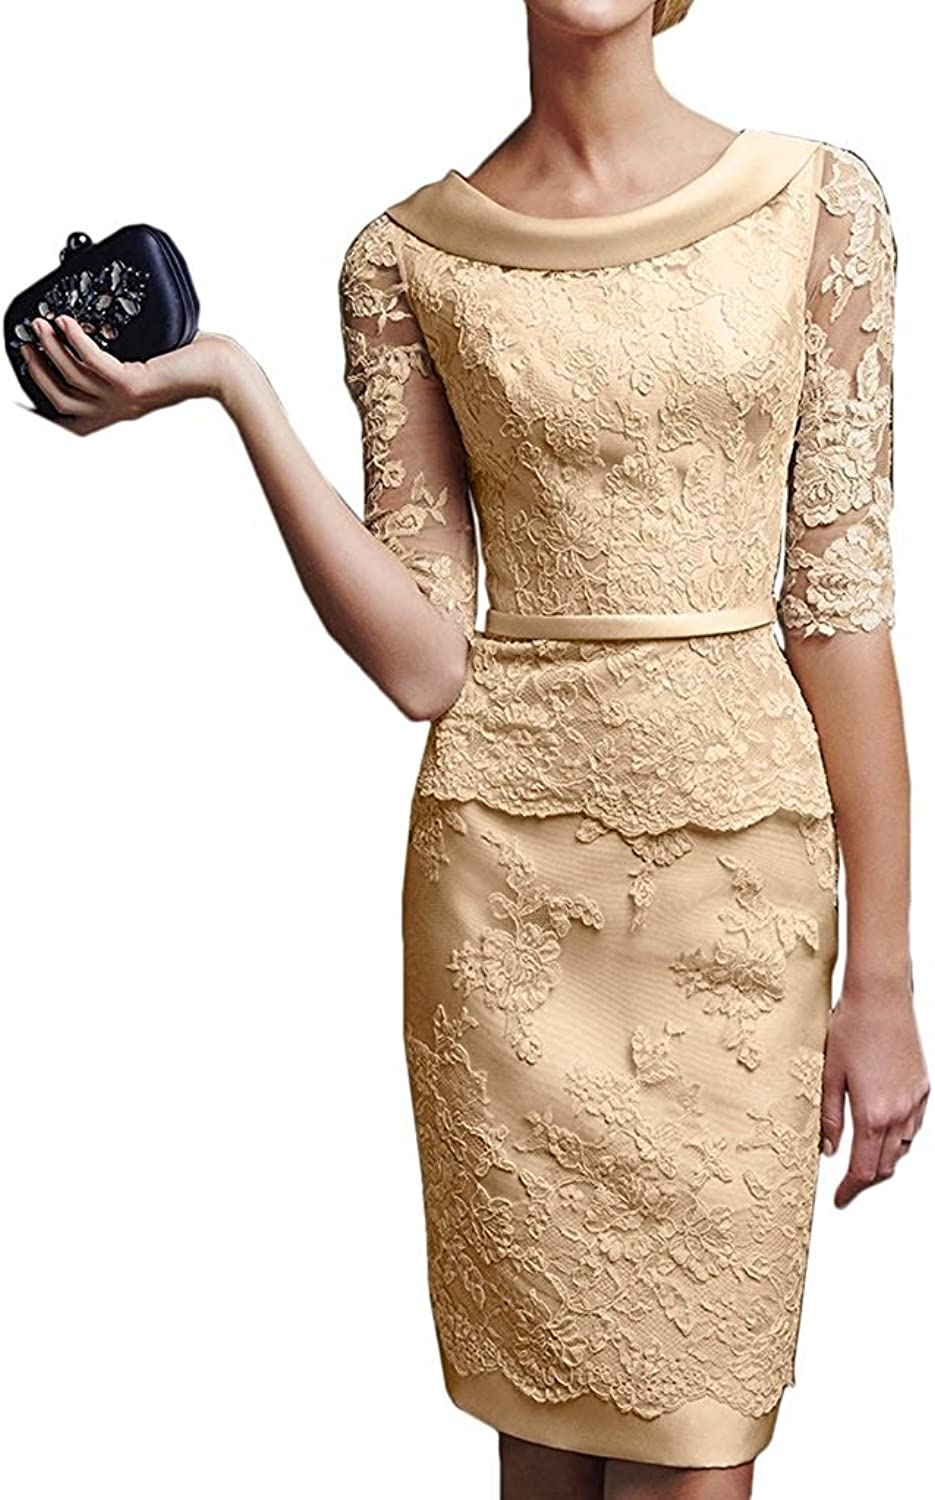 Alexzendra Bridal Short Sheath Half Sleeves Mother Of The Bride Lace Cocktail Dresses